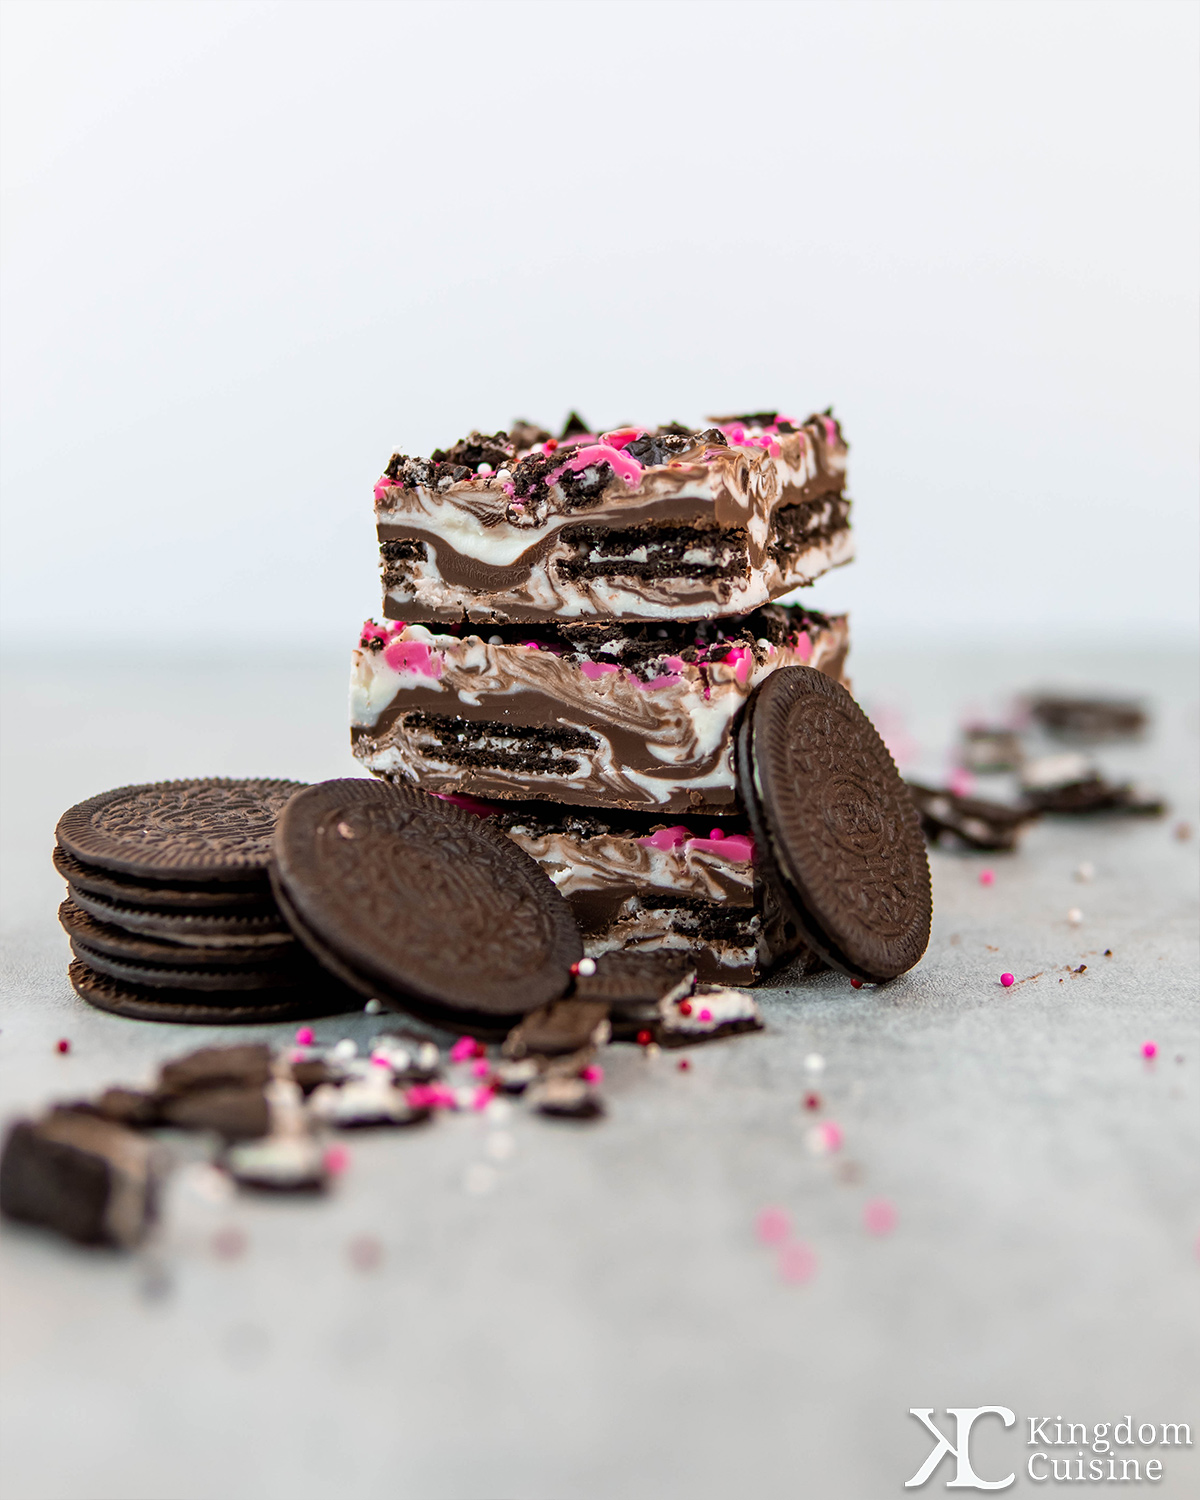 Oreo-stuffed Chocolate Bark